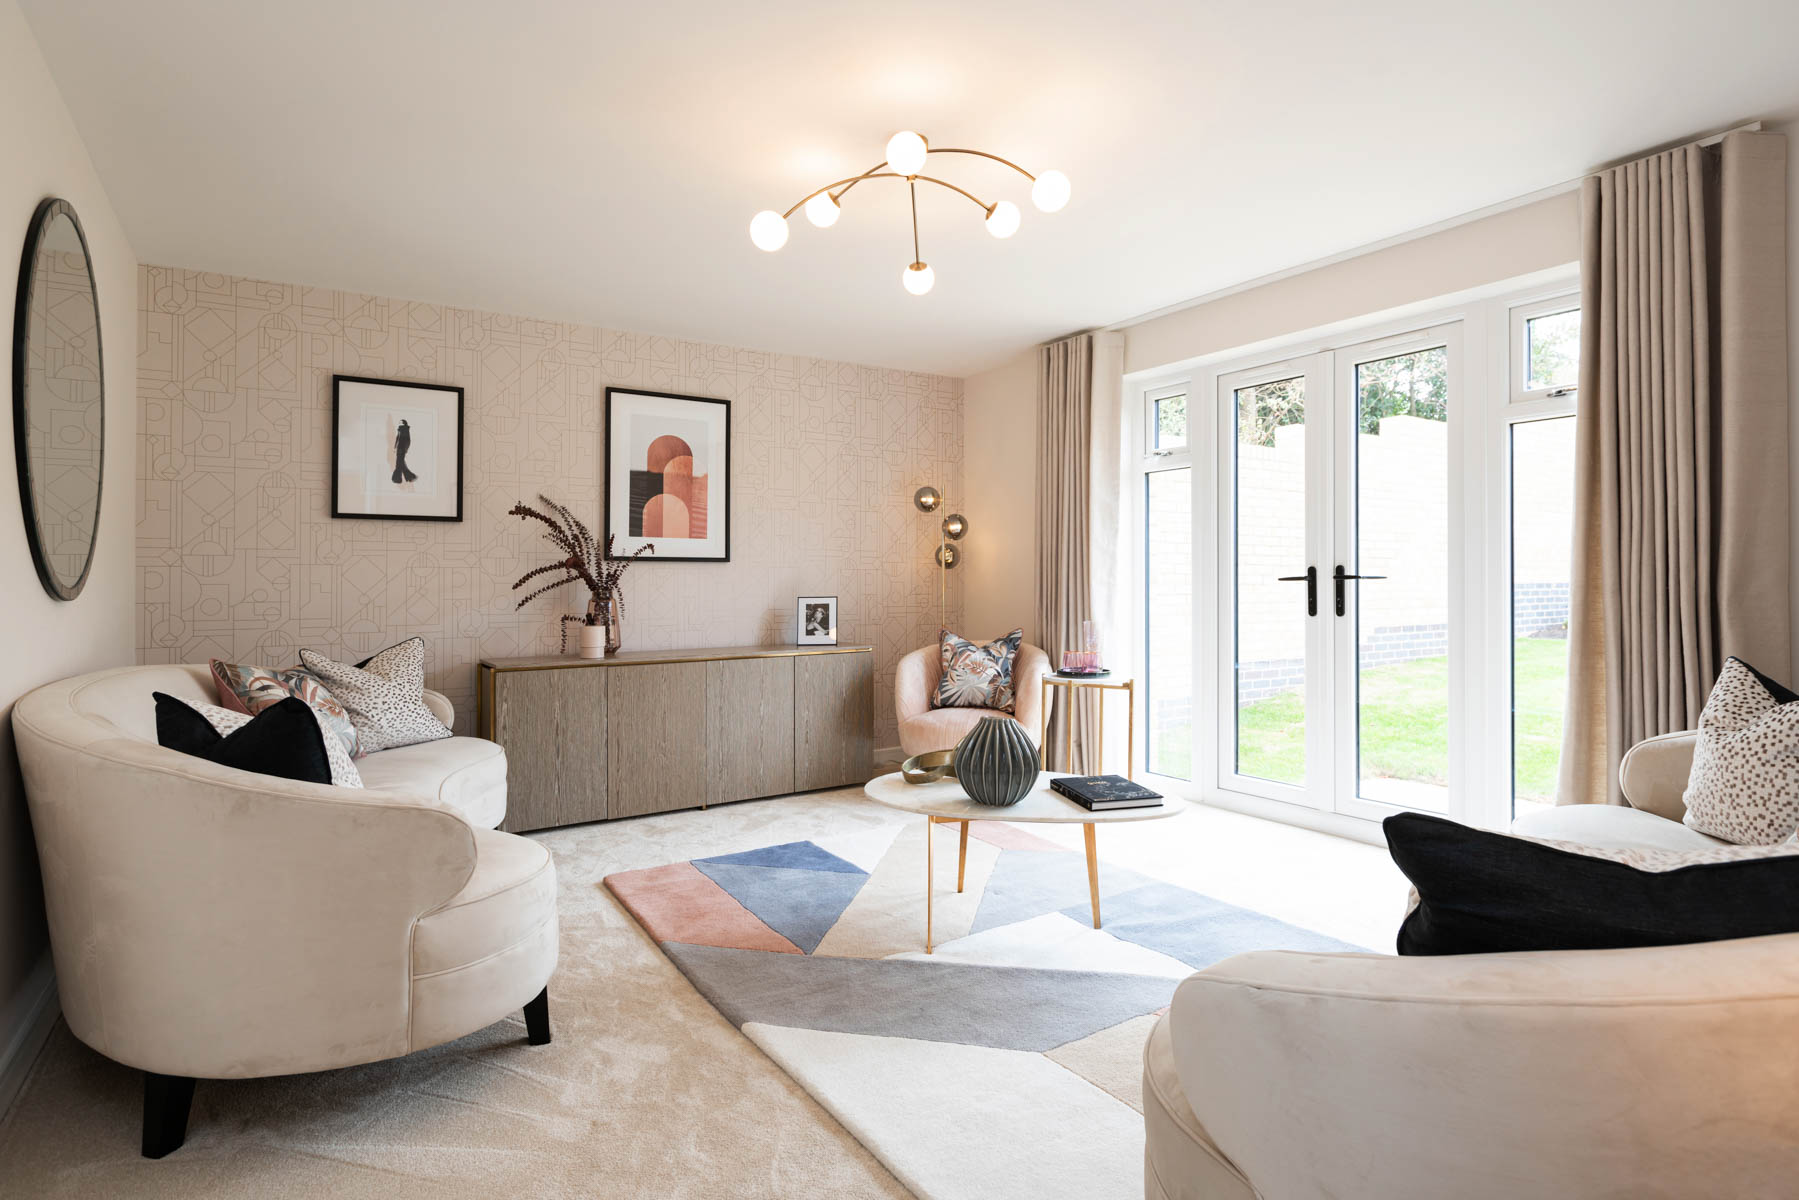 TW Exeter - Cranbrook - Marford example living room